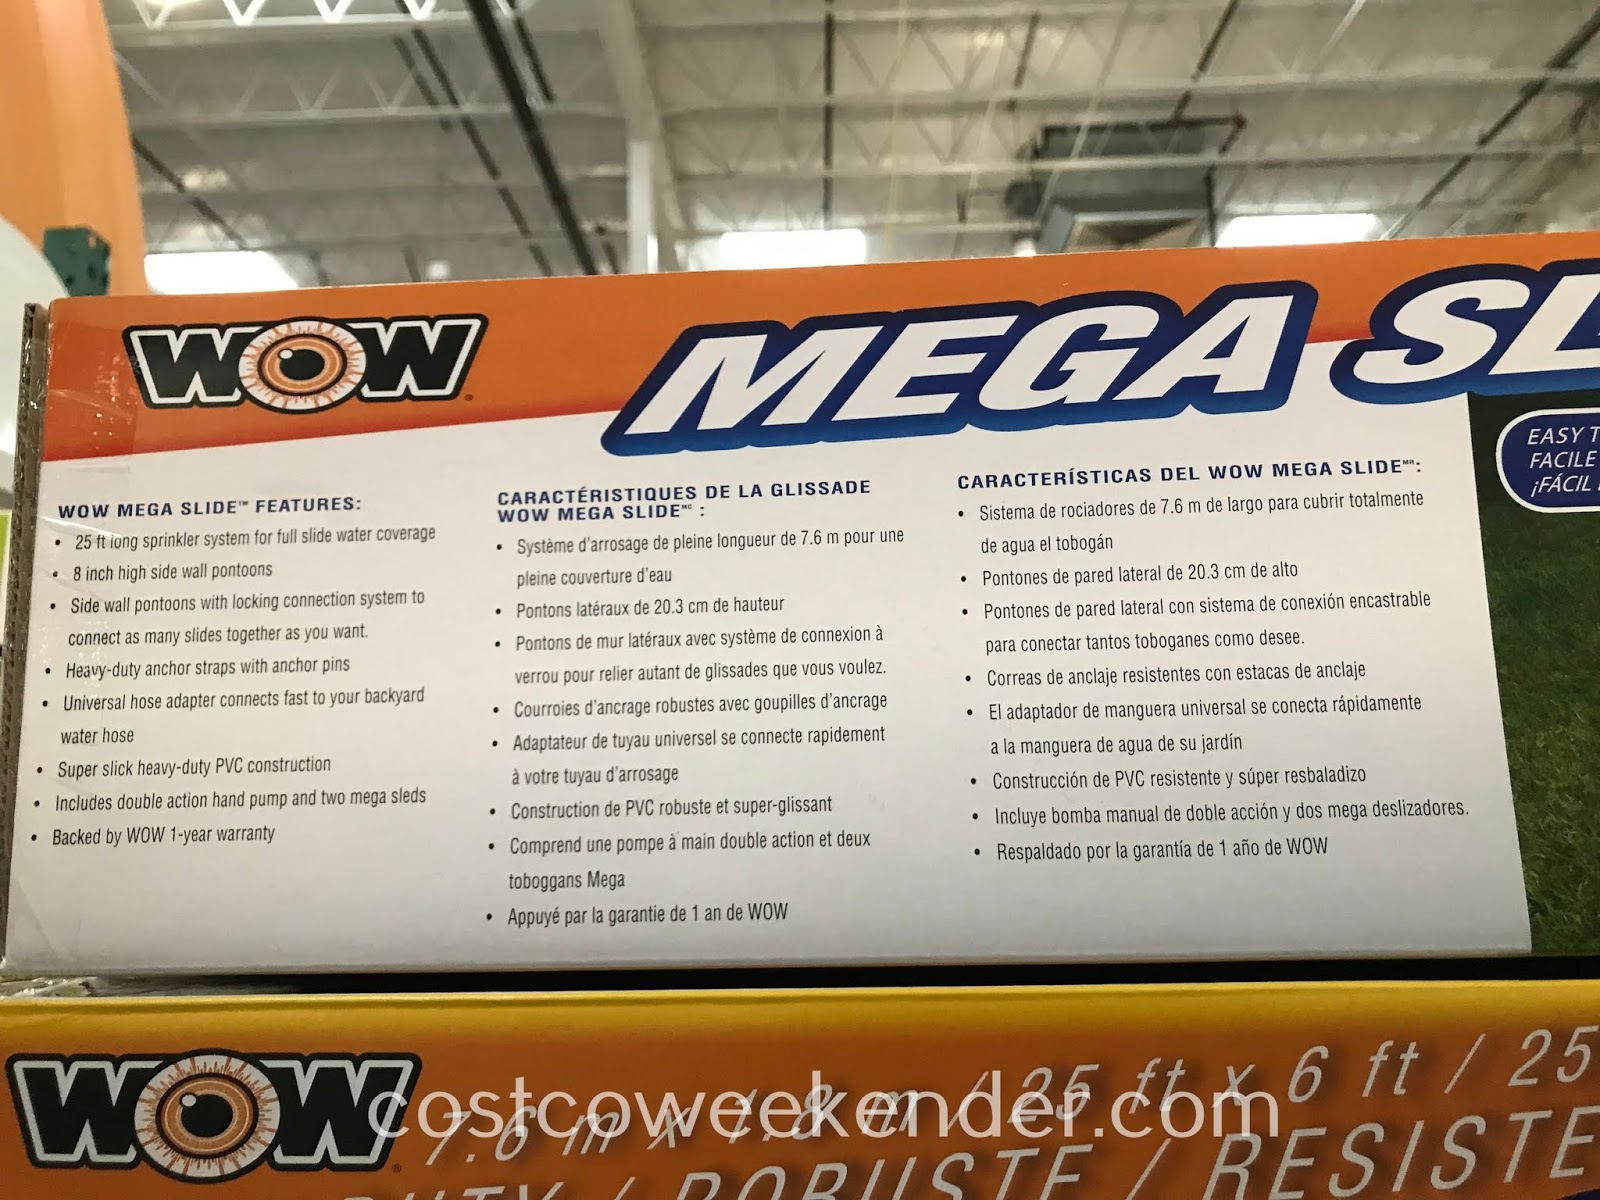 Costco 2001101 - Wow Mega Water Slide: great to cool off during hot, summer afternoons